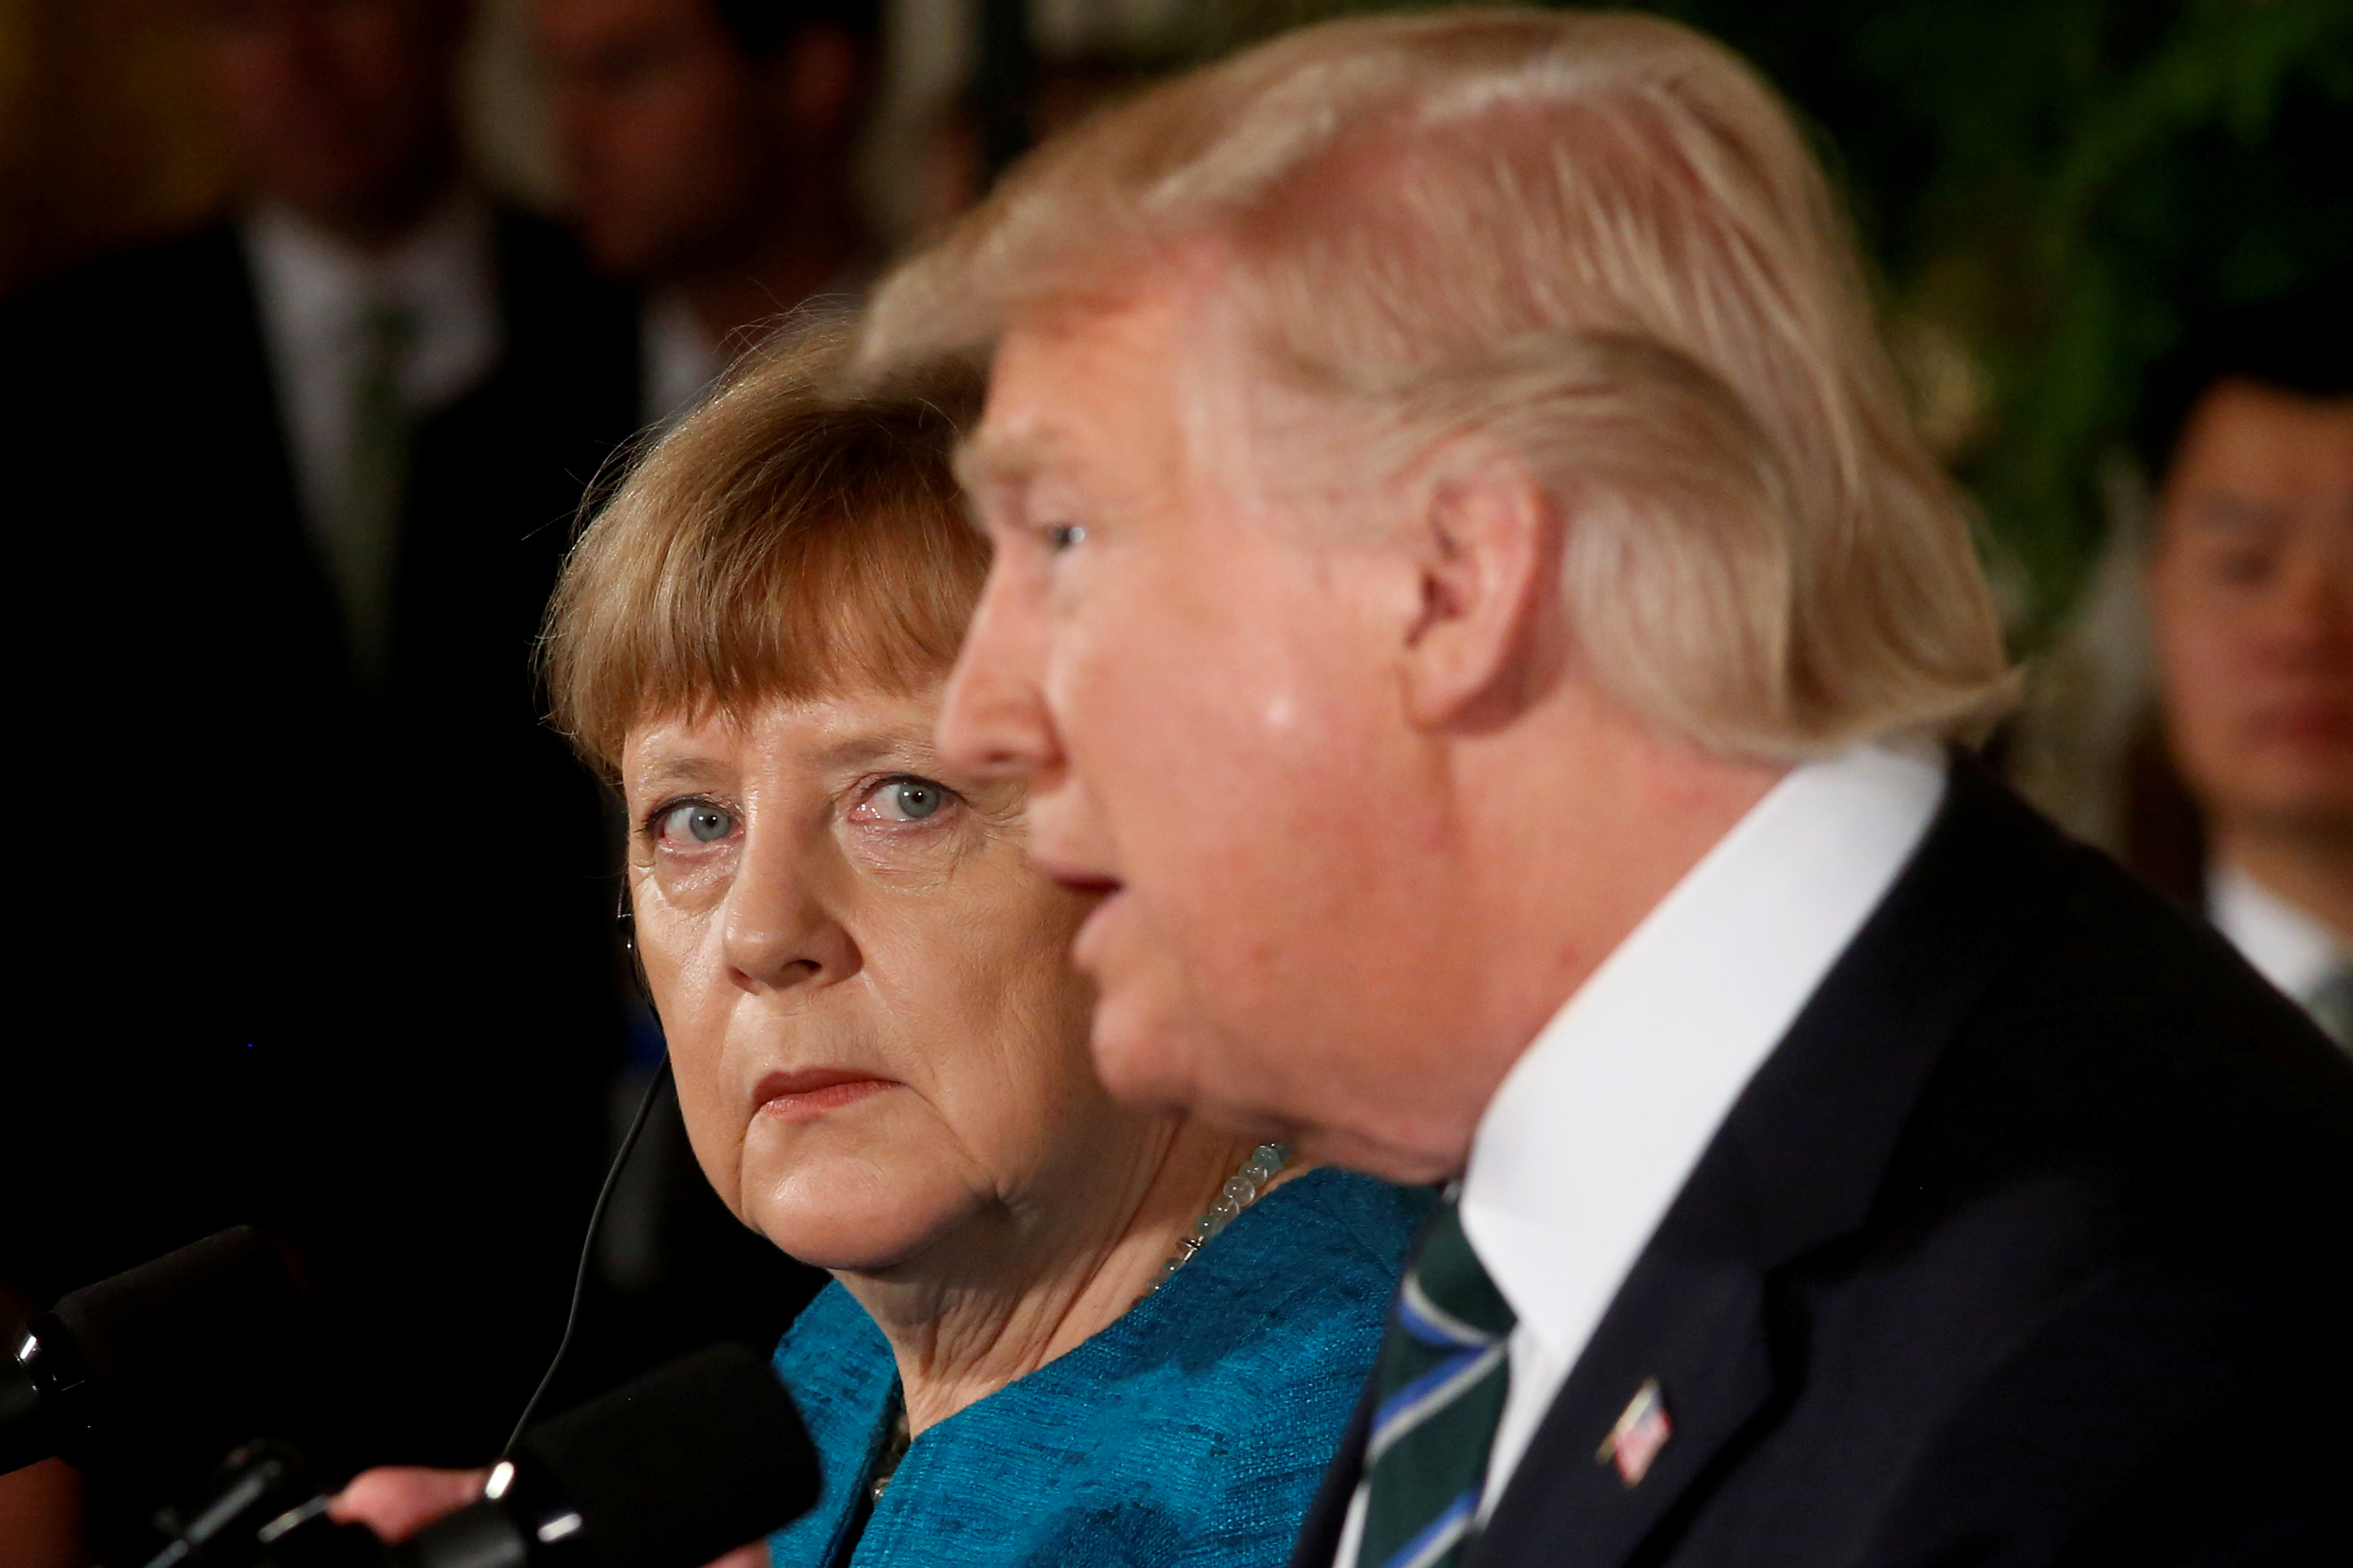 """Germany's Chancellor Angela Merkel and U.S. President Donald Trump hold a joint news conference in the East Room of the White House in Washington, U.S., March 17, 2017. Jonathan Ernst: """"Chancellor Merkel made one of the earliest important visits of any U.S. allies to meet Trump in his first months in office. When world leaders give joint news conferences they don't always tend to give each other their full attention - but Merkel watched Trump intently at several key moments, and here seemed particularly rapt."""" REUTERS/Jonathan Ernst/File Photo  SEARCH """"POY TRUMP"""" FOR THIS STORY. SEARCH """"REUTERS POY"""" FOR ALL BEST OF 2017 PACKAGES.    TPX IMAGES OF THE DAY - RC19ADFDA180"""